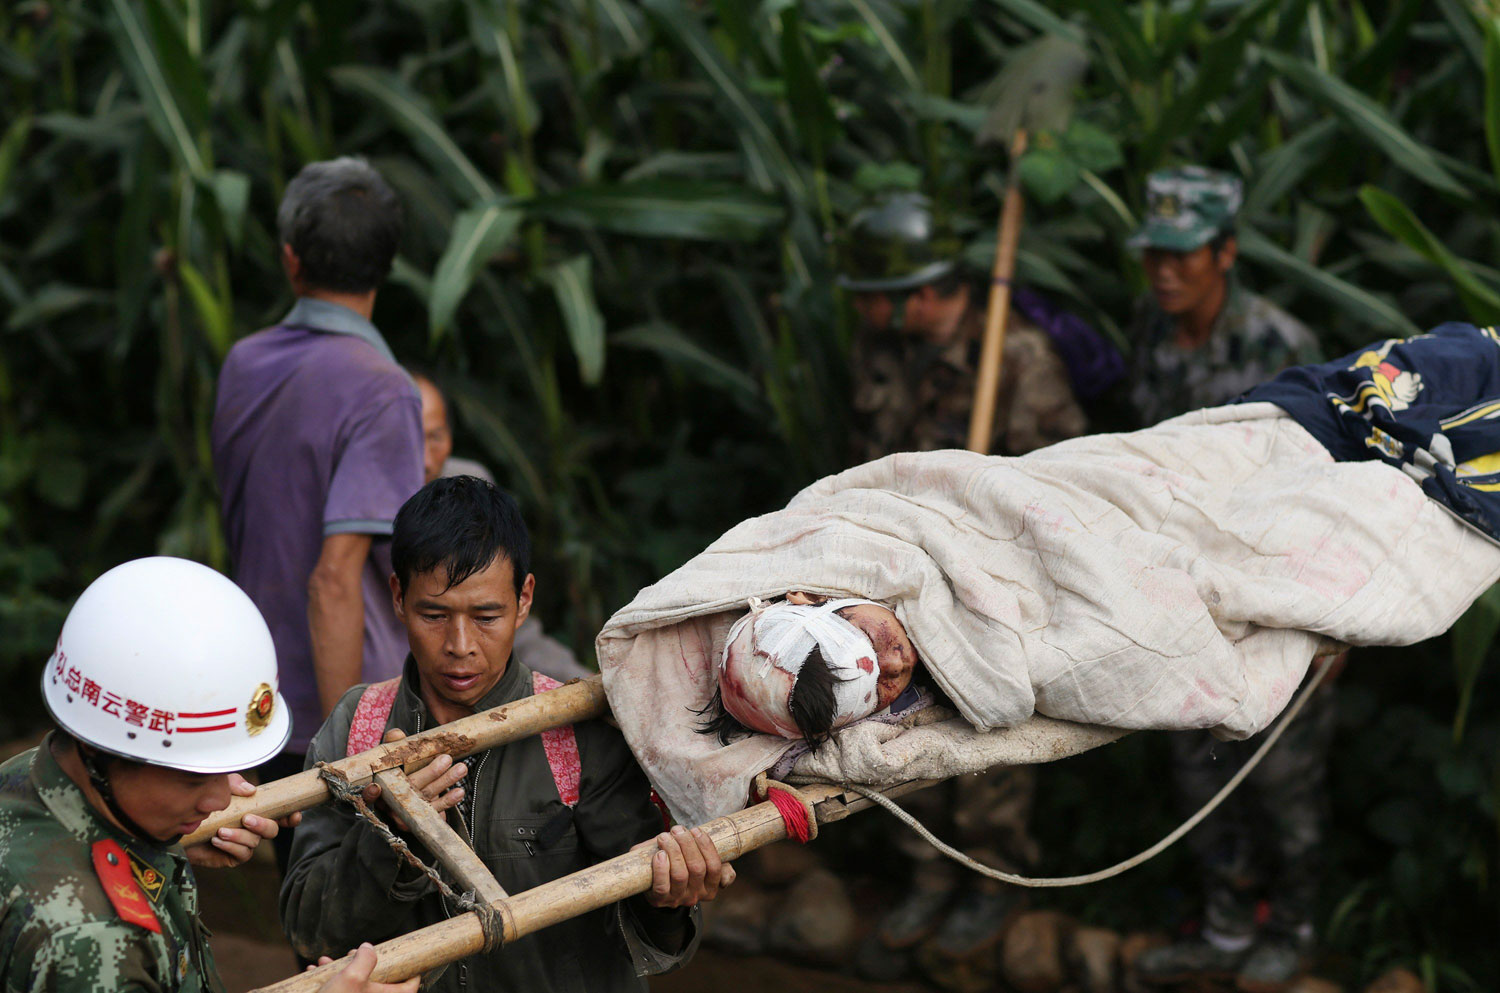 Rescuers carry an injured boy on a makeshift stretcher after an earthquake hit Longtoushan township of Ludian county, Yunnan province on Aug. 4, 2014.